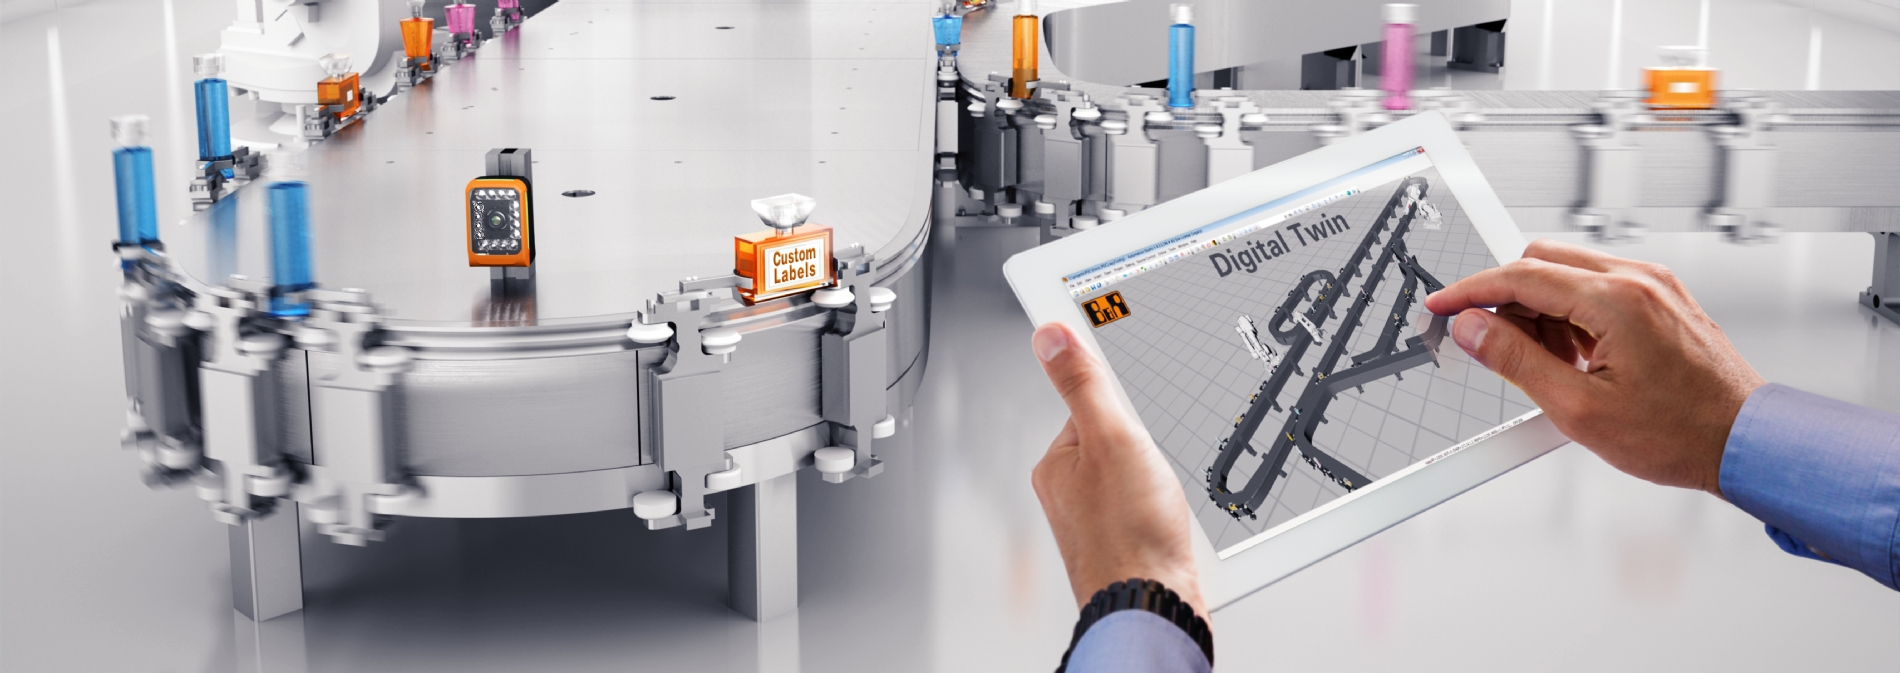 Automated by B&R - ACOPOStrak: Makro Labelling - revolutionizing rotary labelling